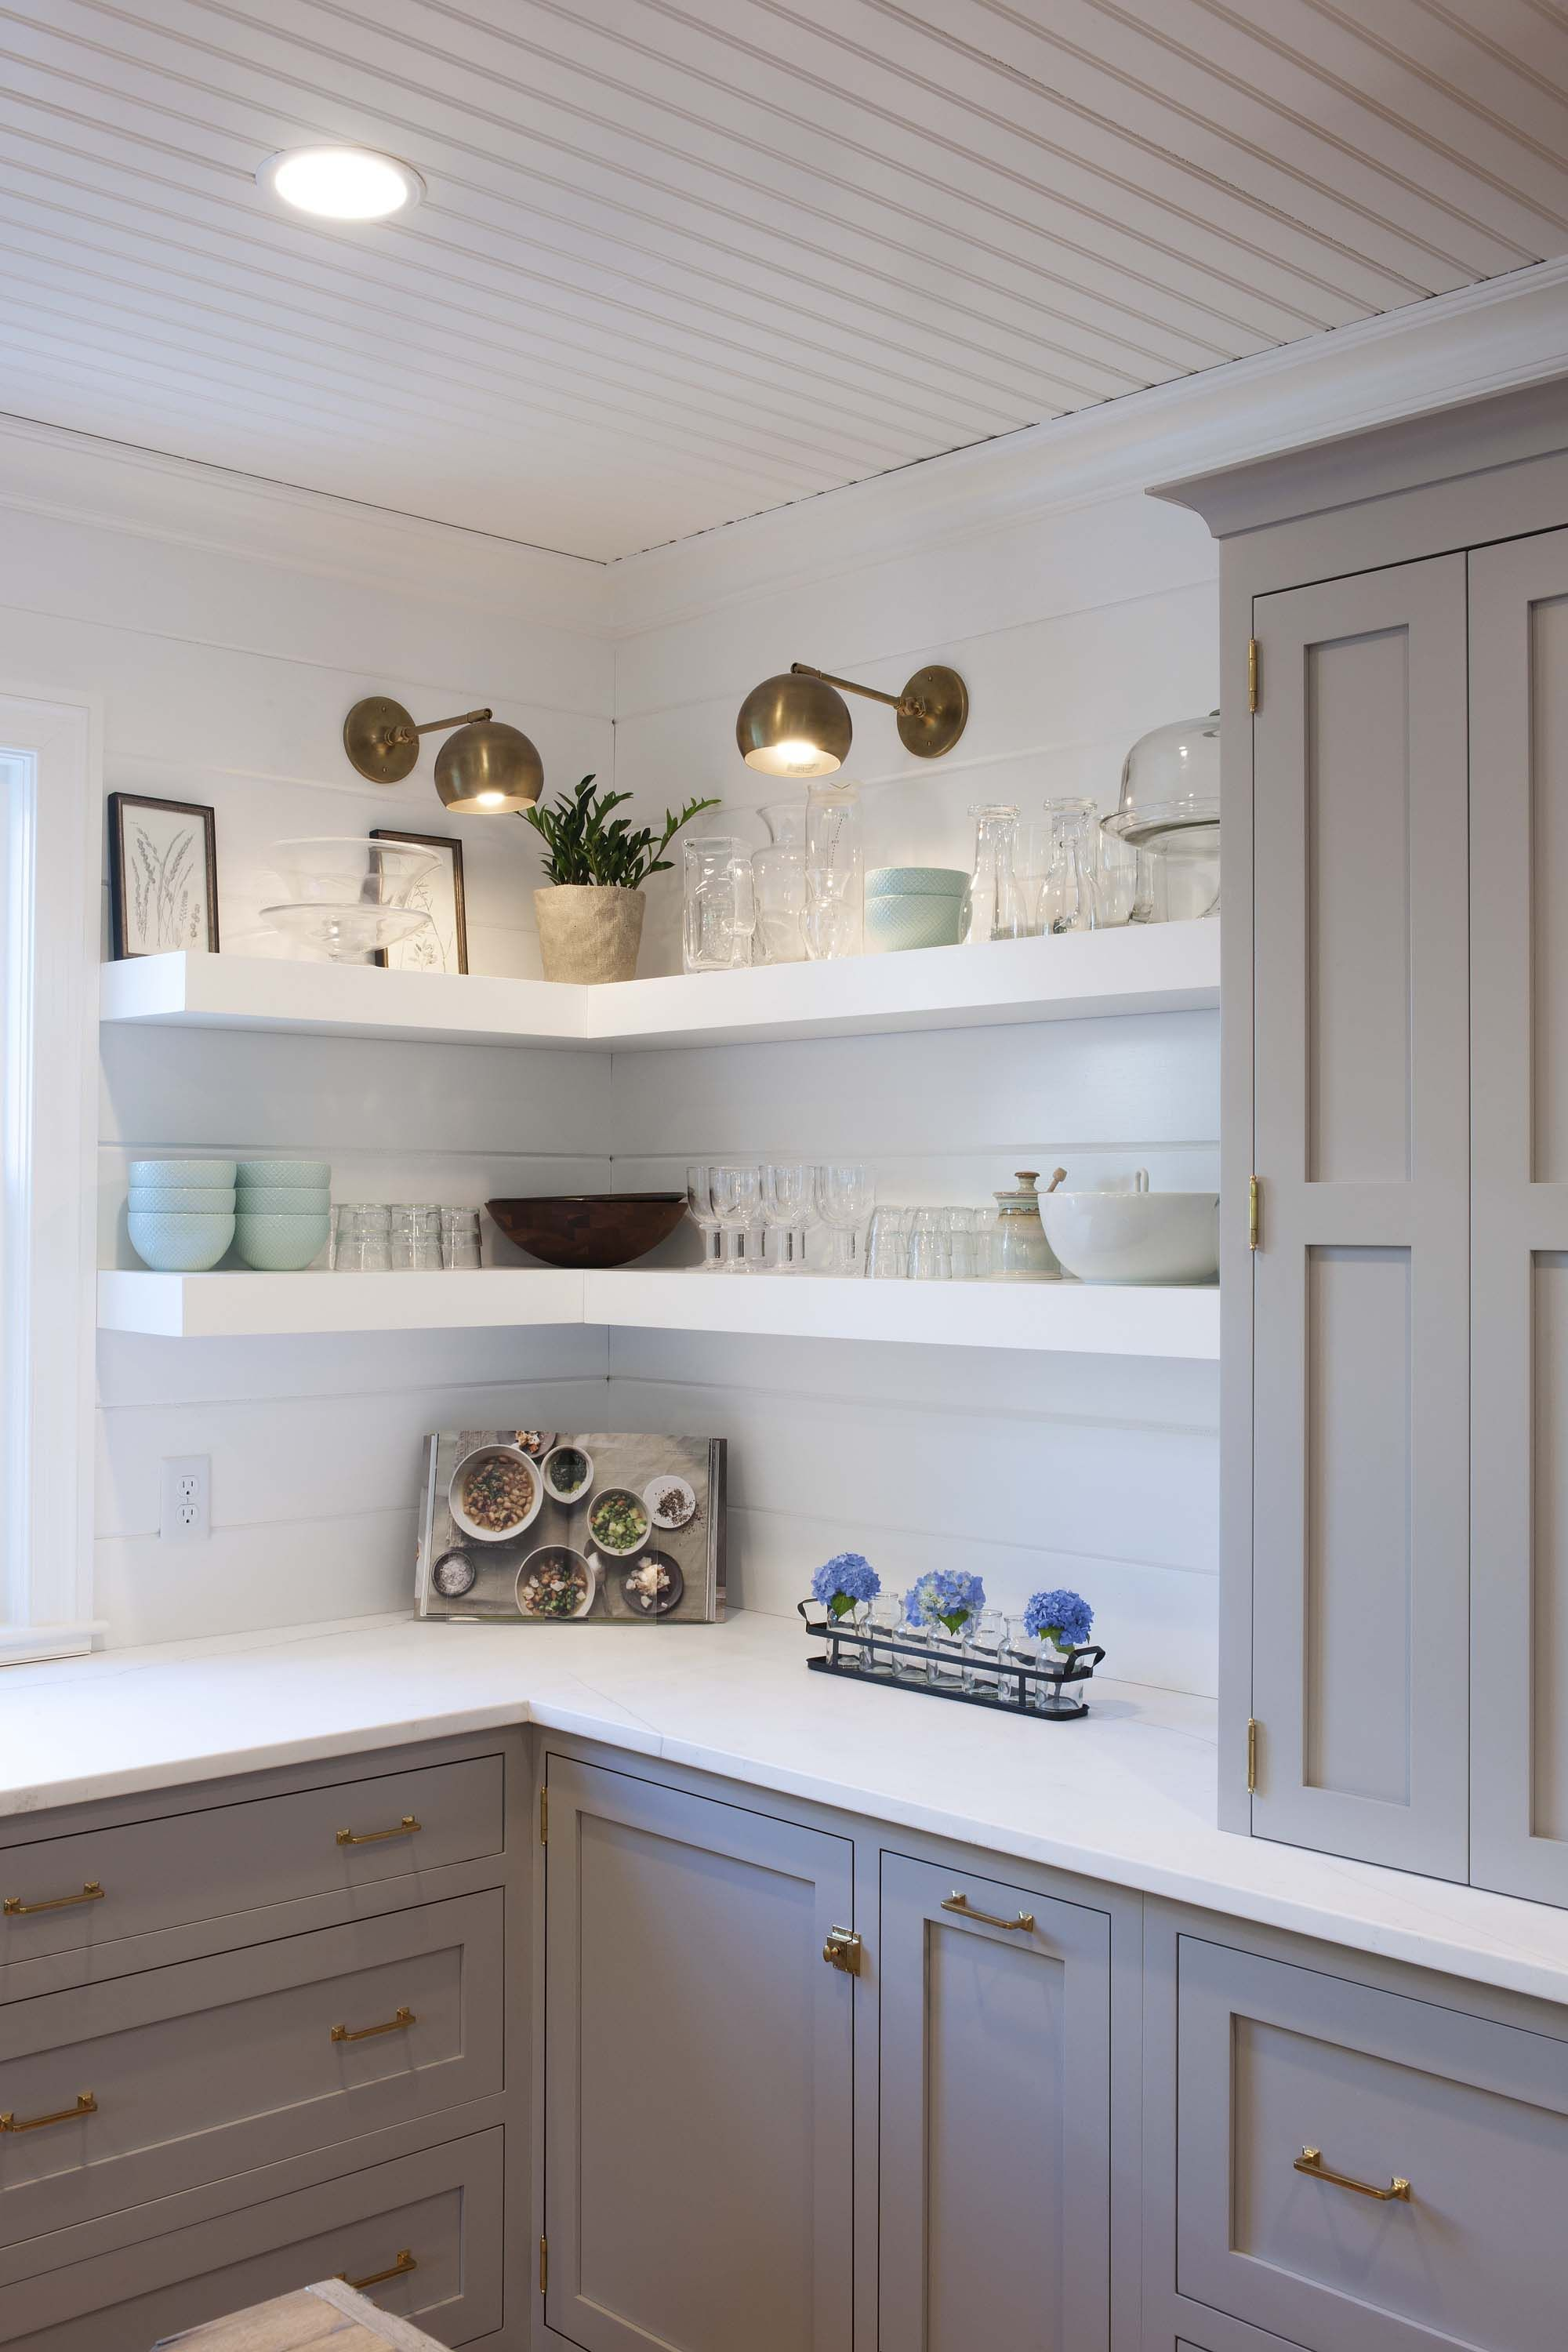 106 12 What S Here Wood Maple Paint Color Truly Taupe Pure White Corner Shelves Door Diy Kitchen Shelves Open Kitchen Shelves Kitchen Cabinet Design